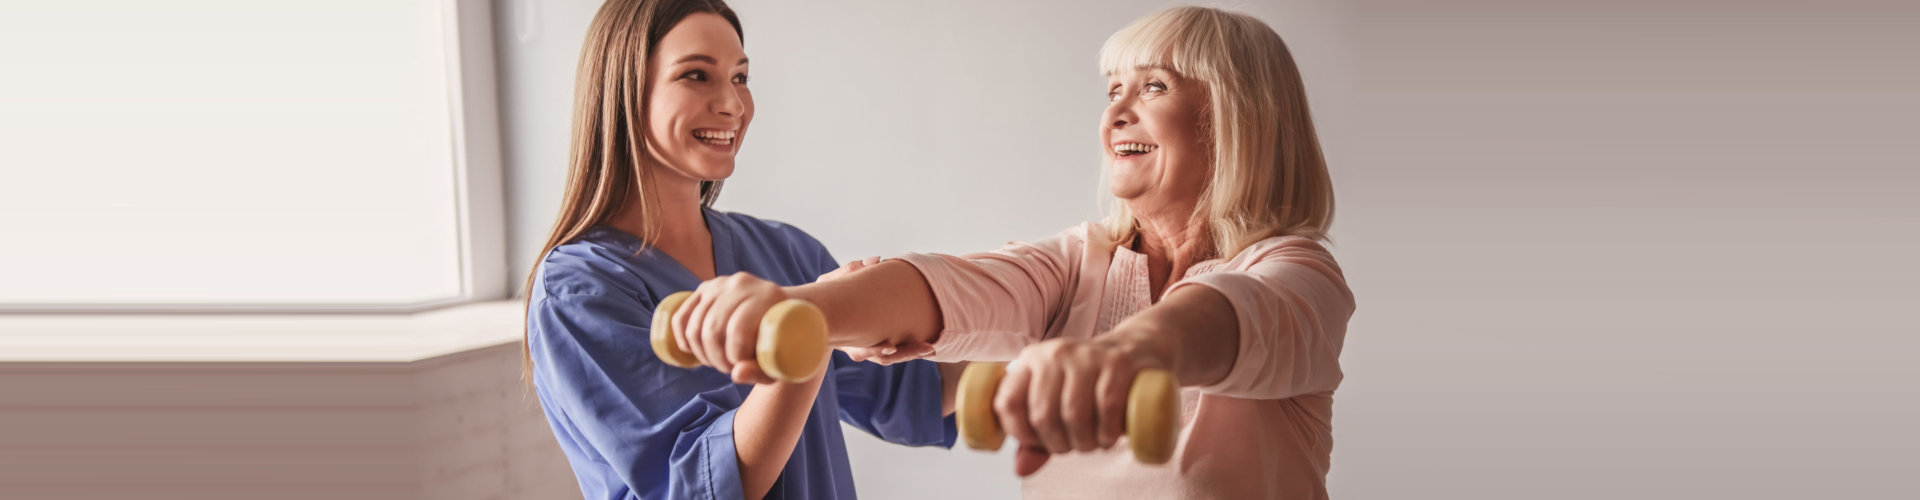 caregiver helping senior woman with her therapy